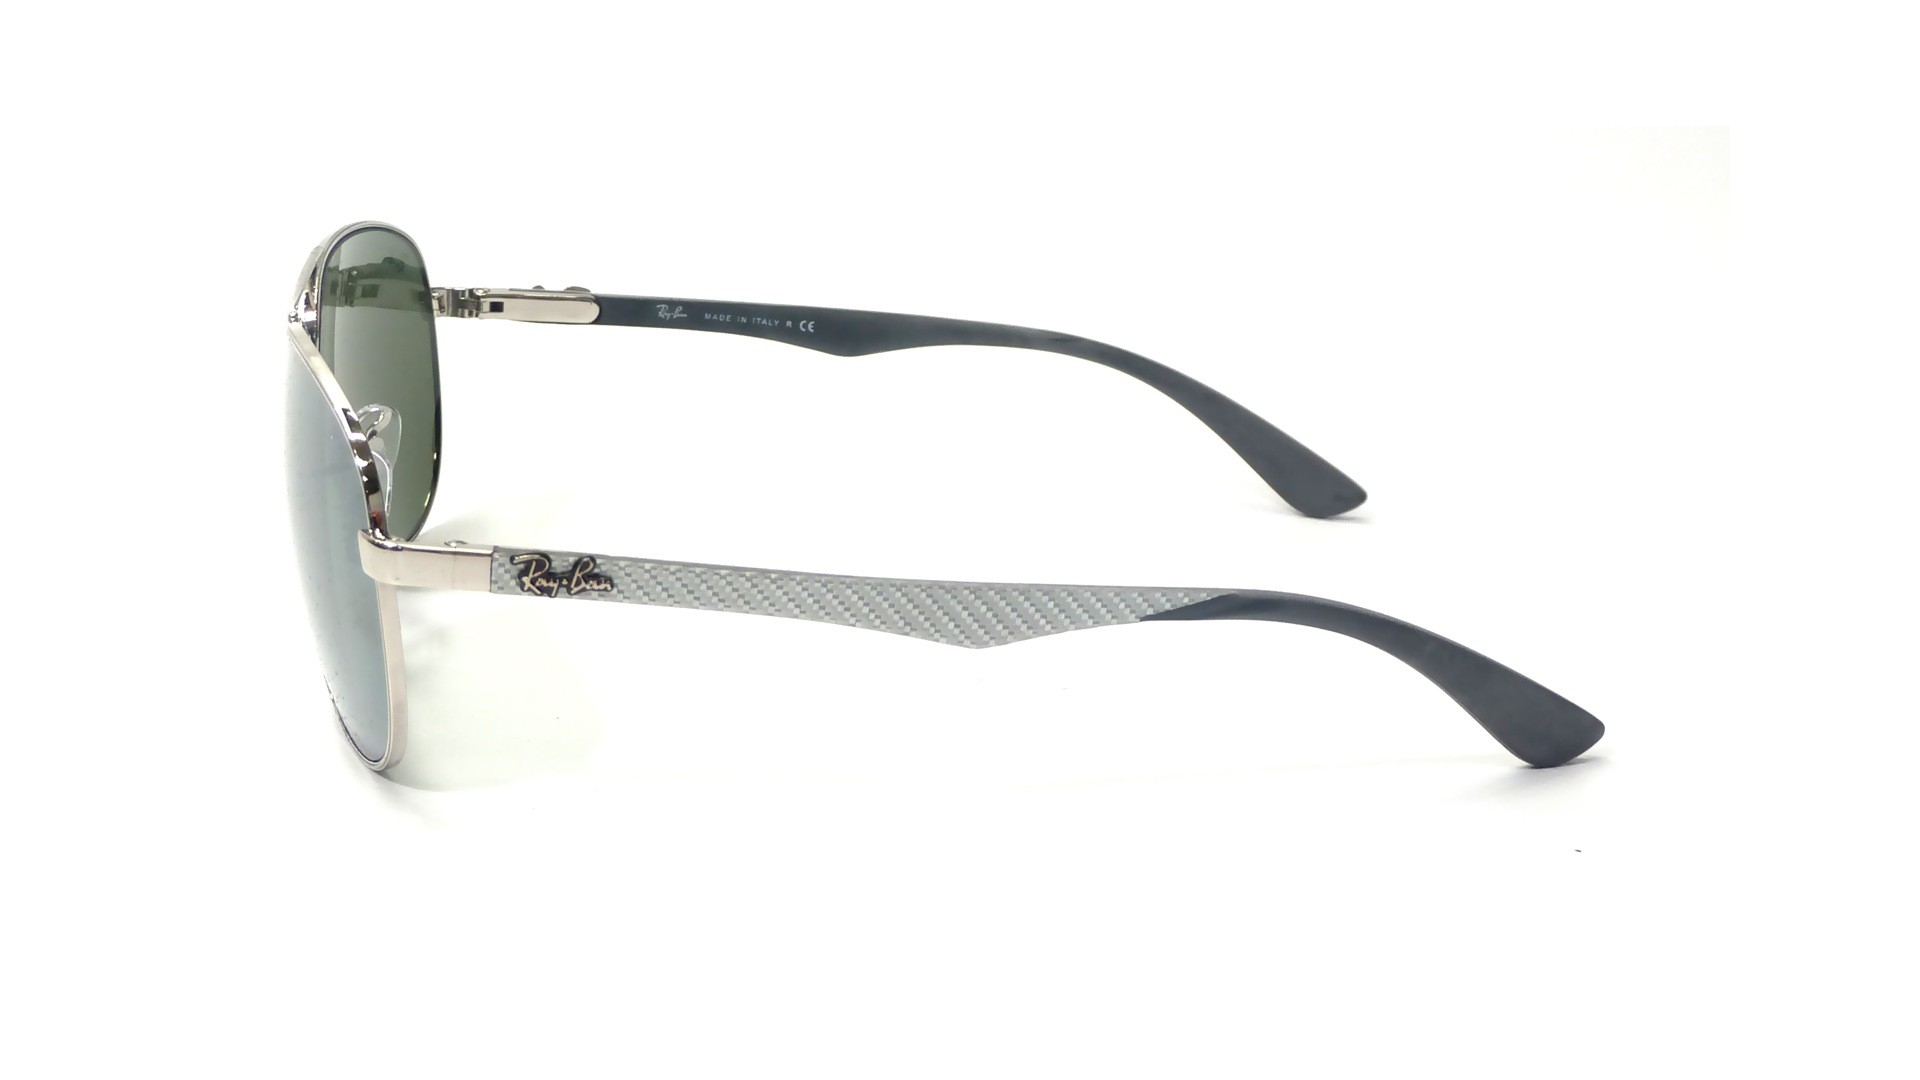 1a1fb16e093 Ray-ban Sunglasses Rb8313 58 Carbon Fibre